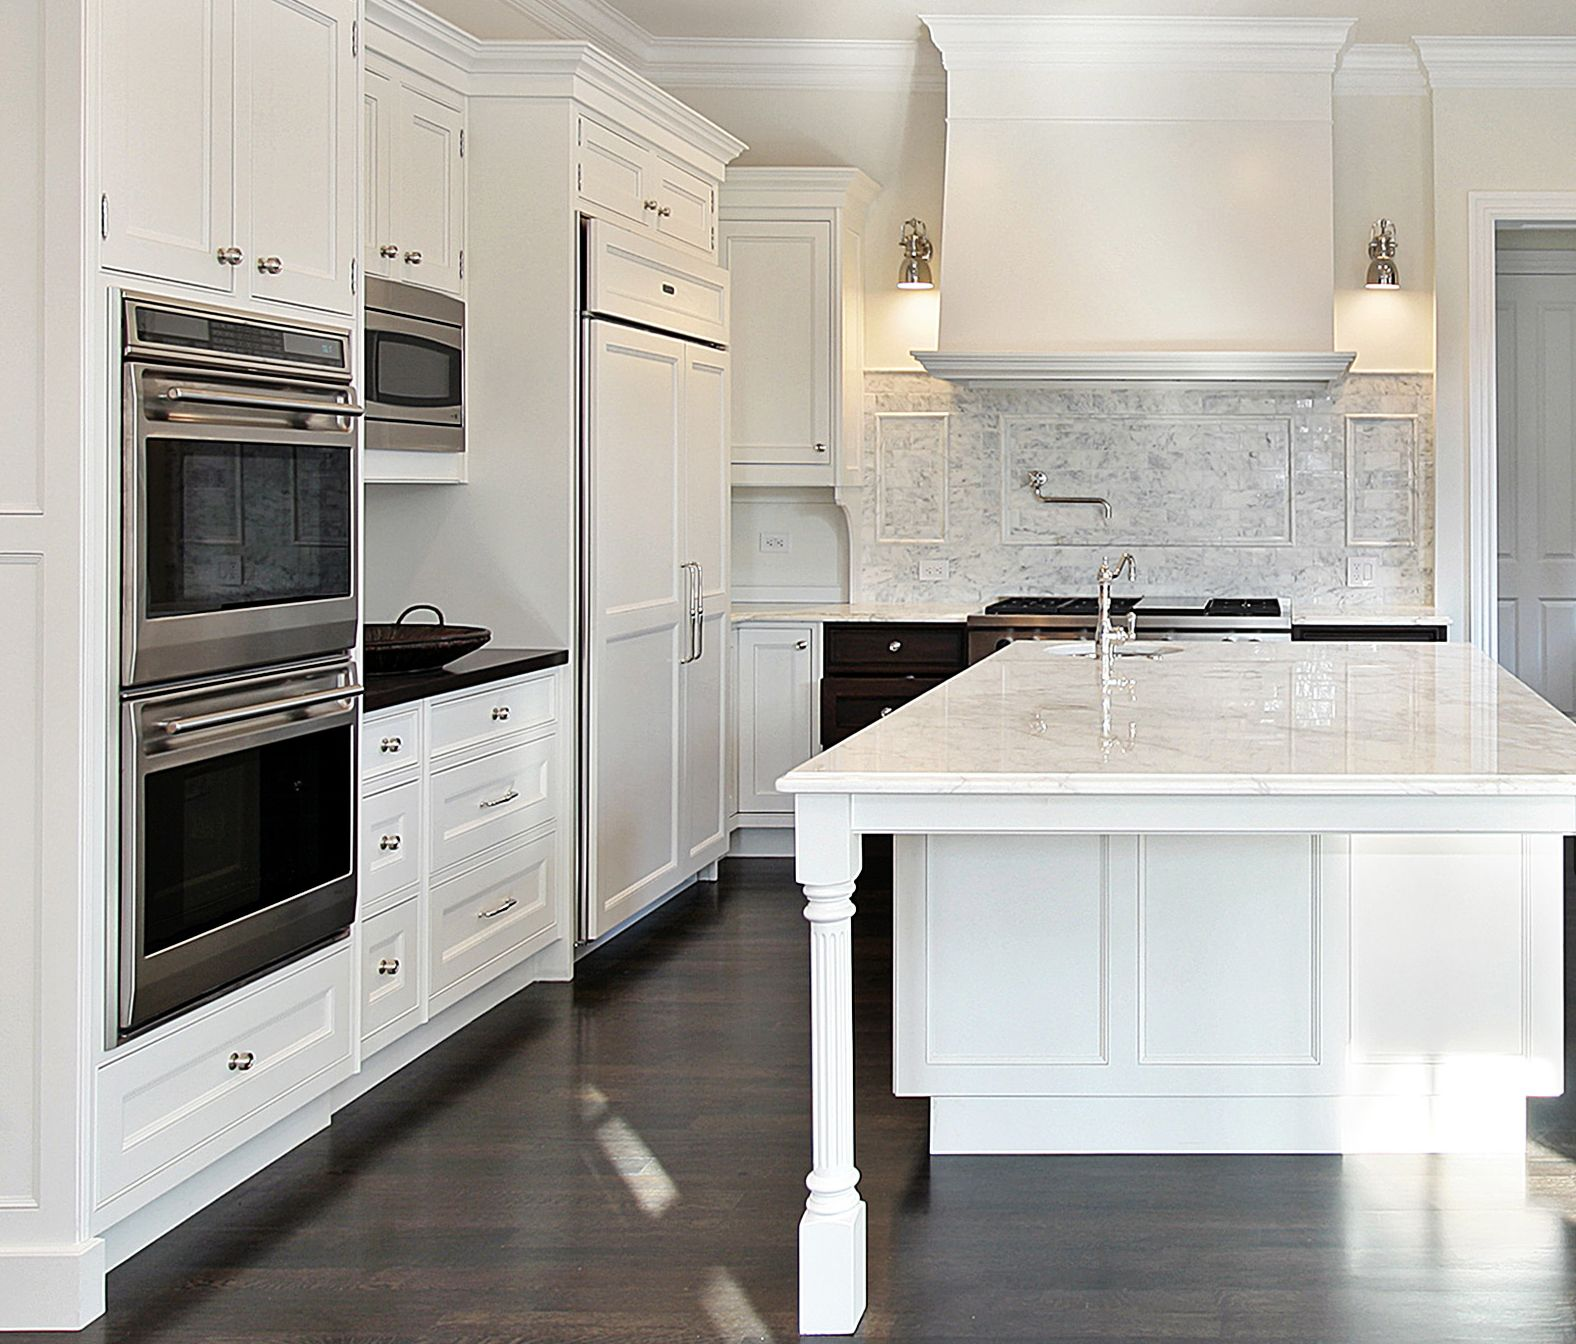 Prasada Kitchens And Fine Cabinetry: Lovely White Kitchen With Large Decorative Wood Hood And